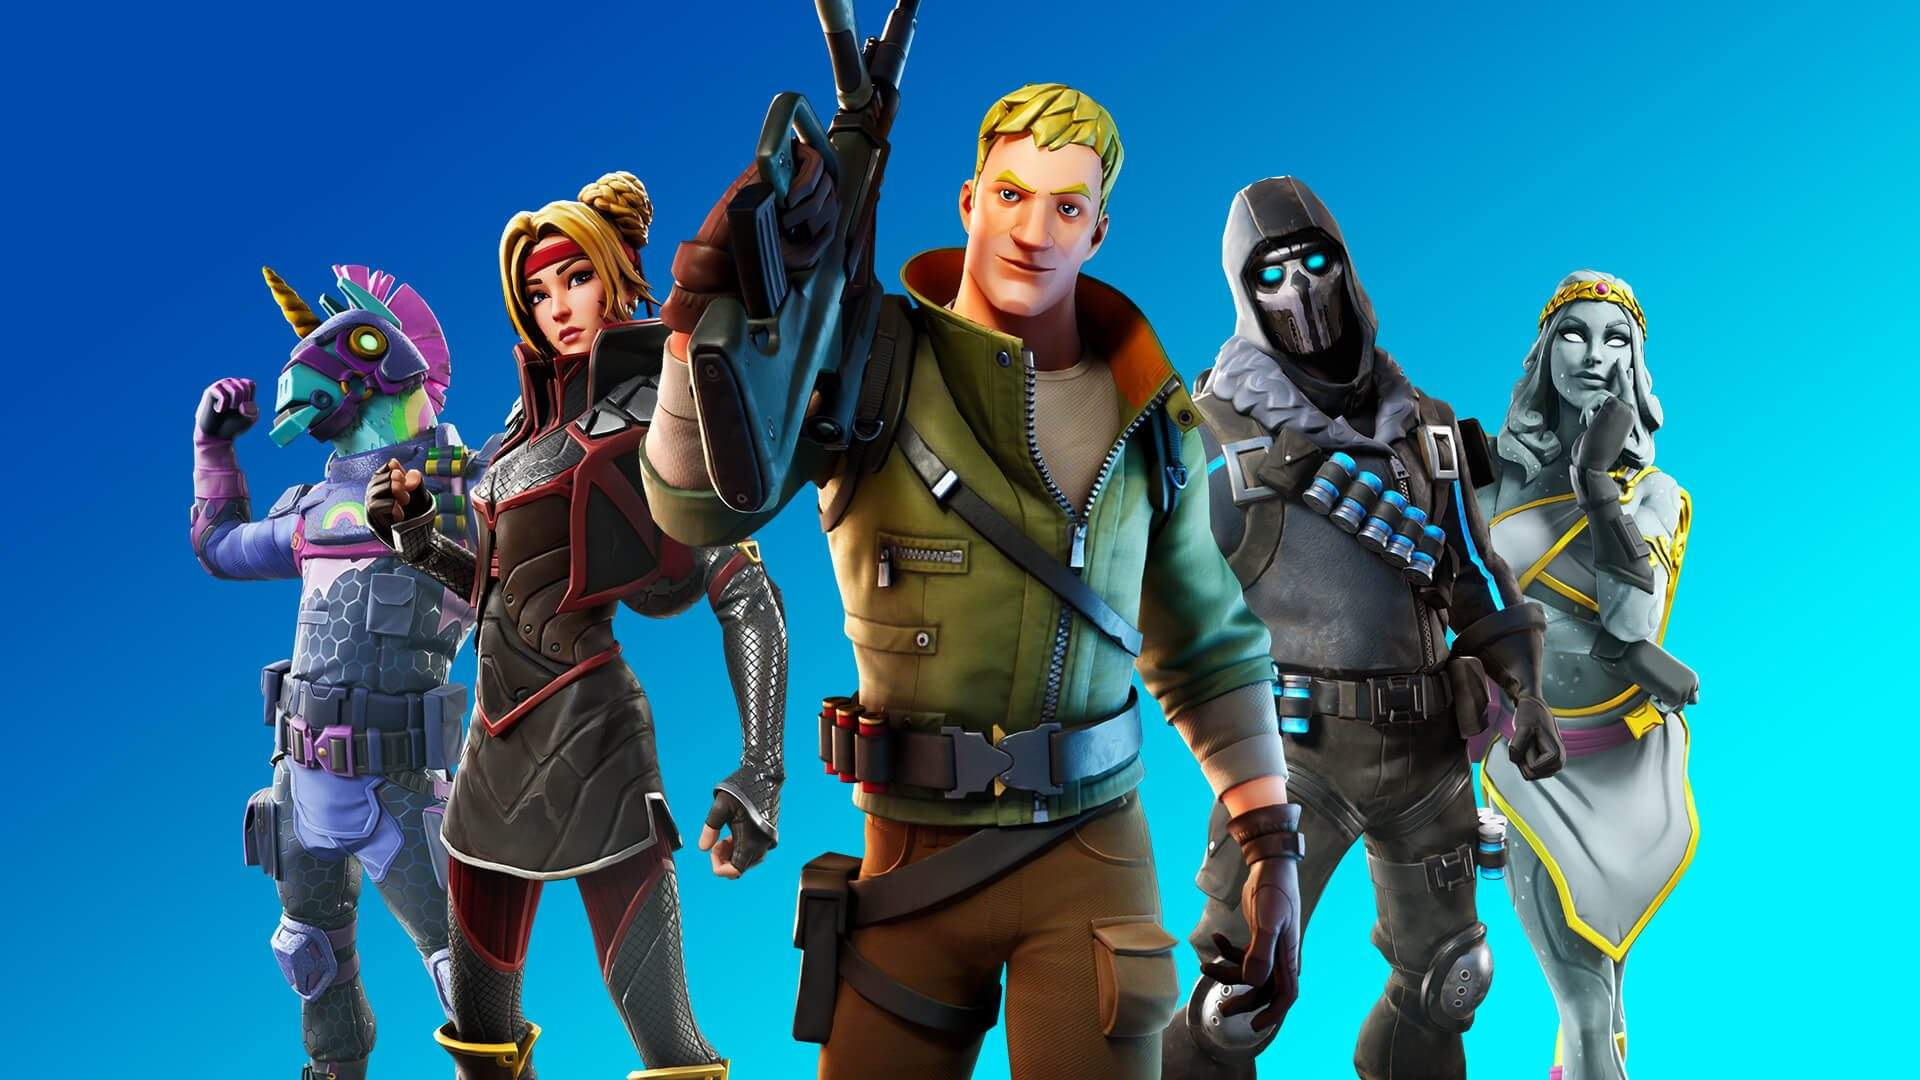 Fortnite will be released on PS5 and Xbox Serie X at launch